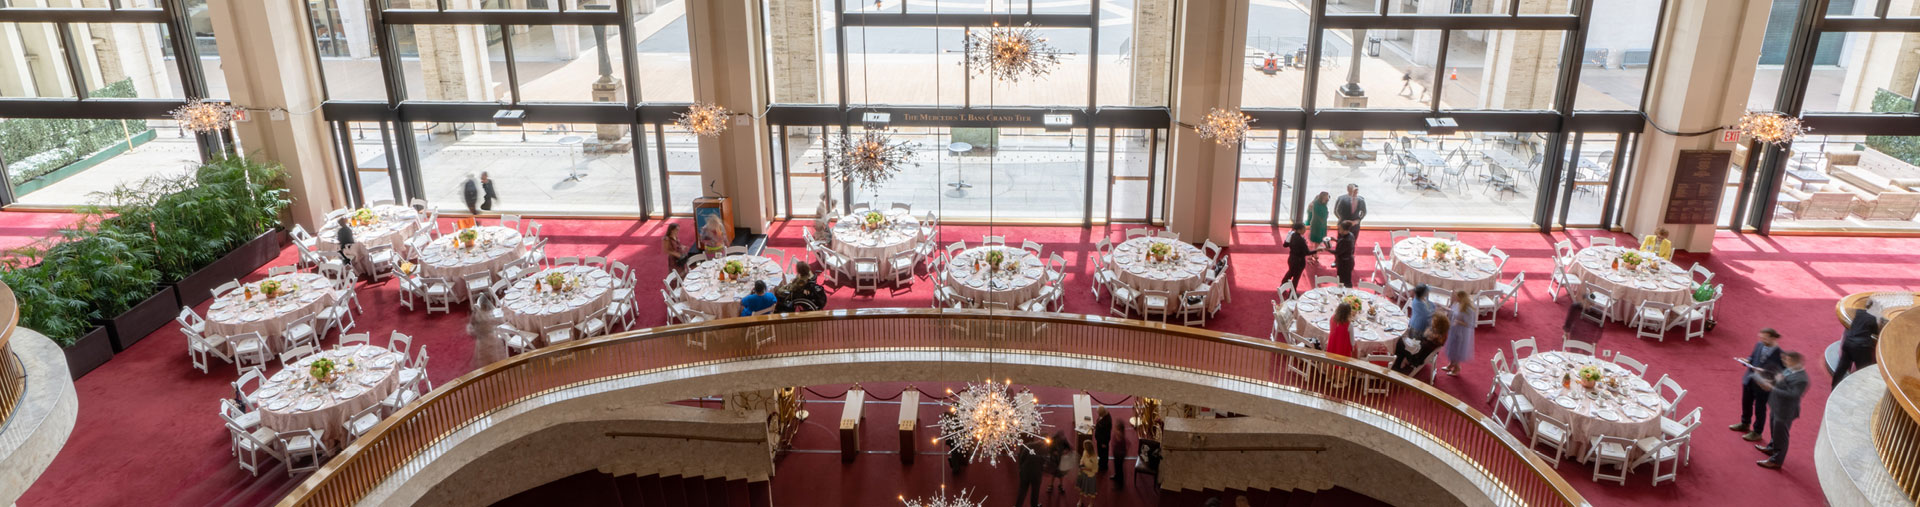 Private event space inside The Grand Tier Restaurant in NYC